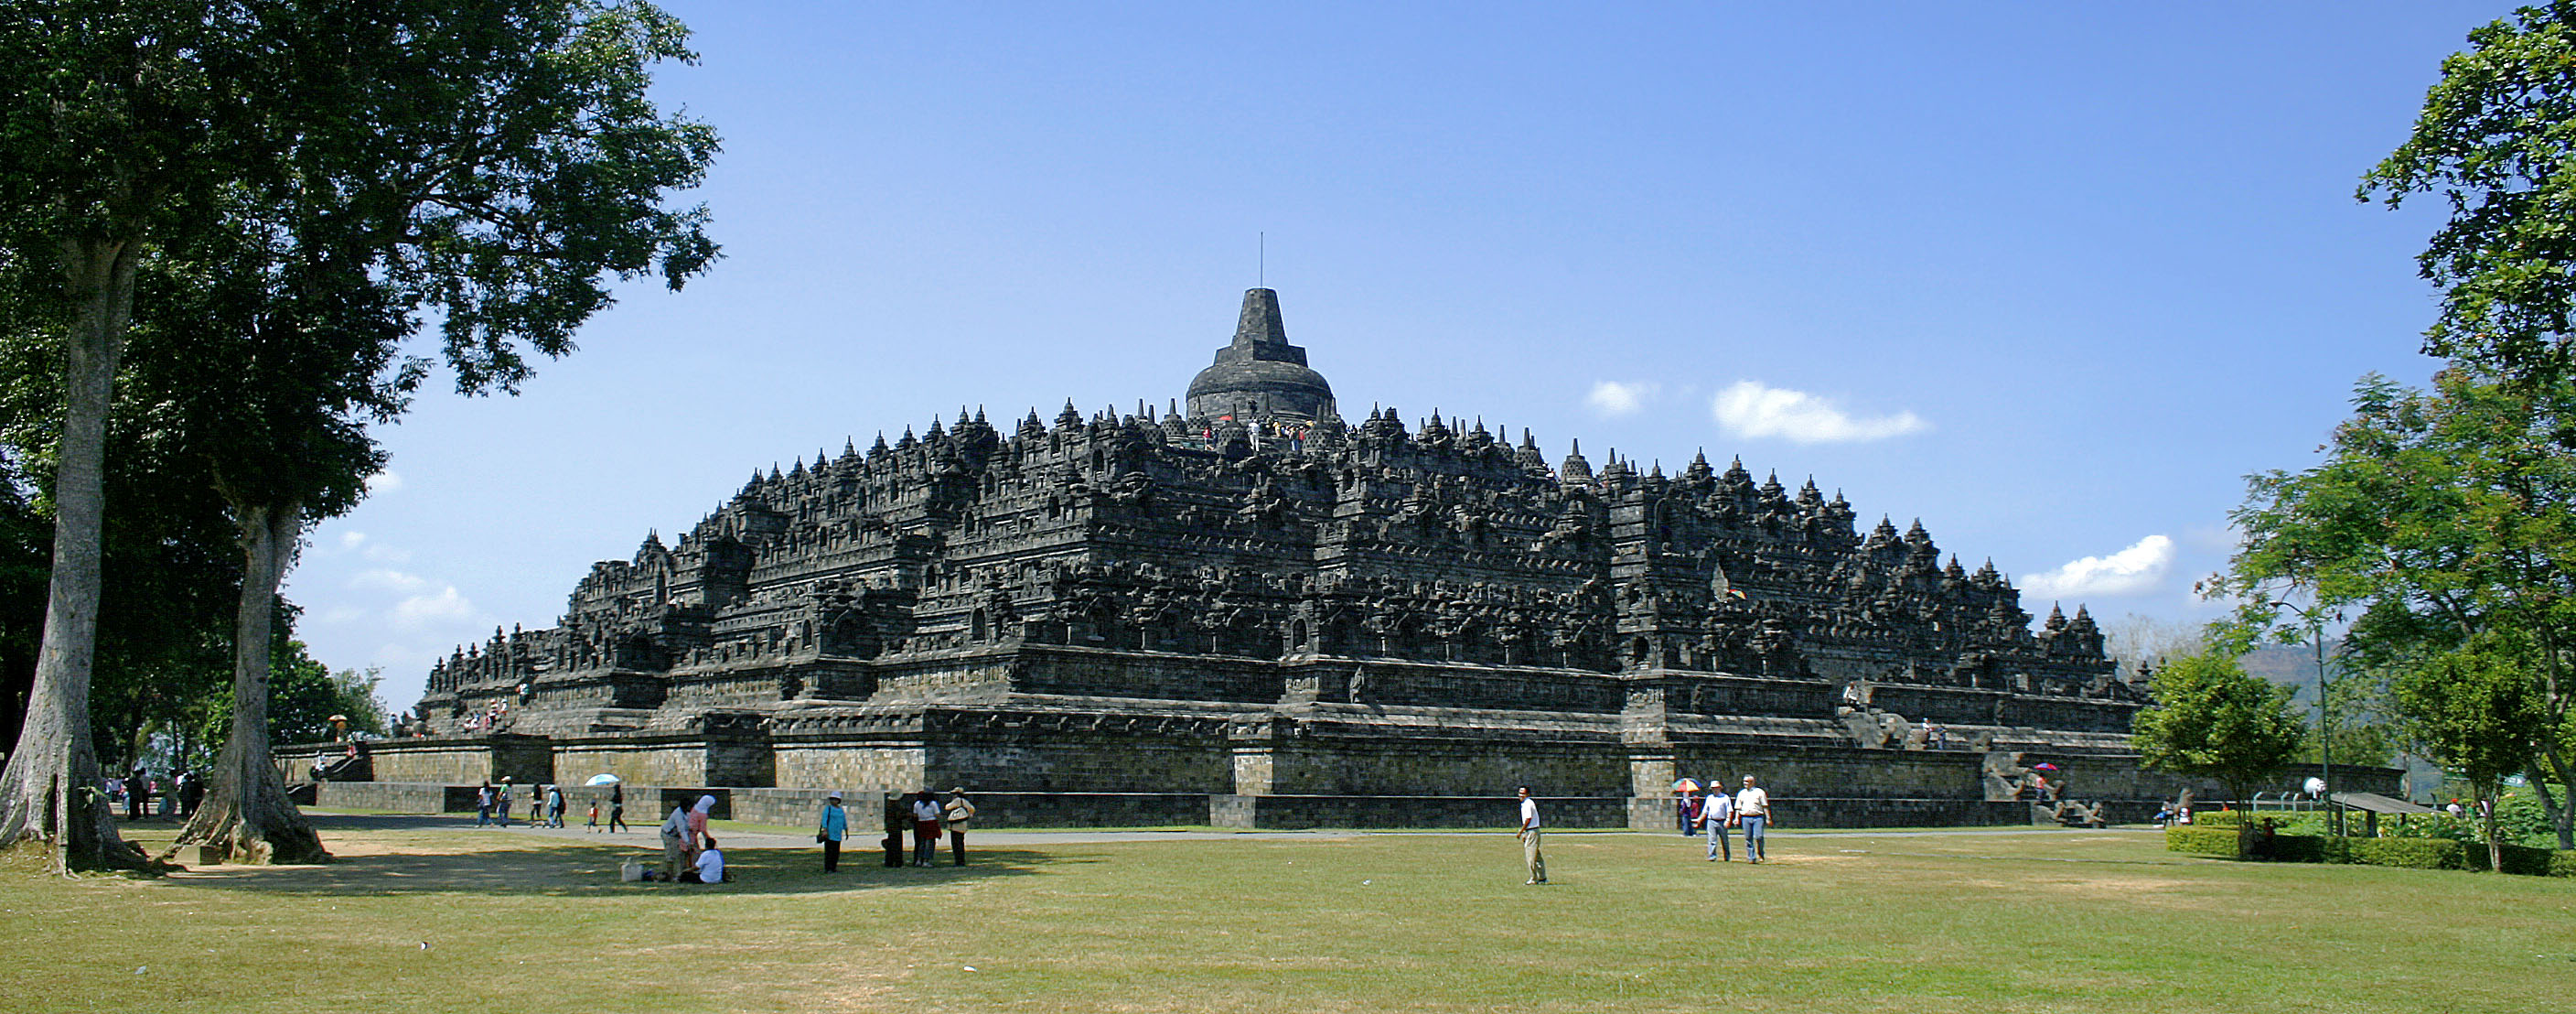 http://upload.wikimedia.org/wikipedia/commons/8/8c/Borobudur-Nothwest-view.jpg